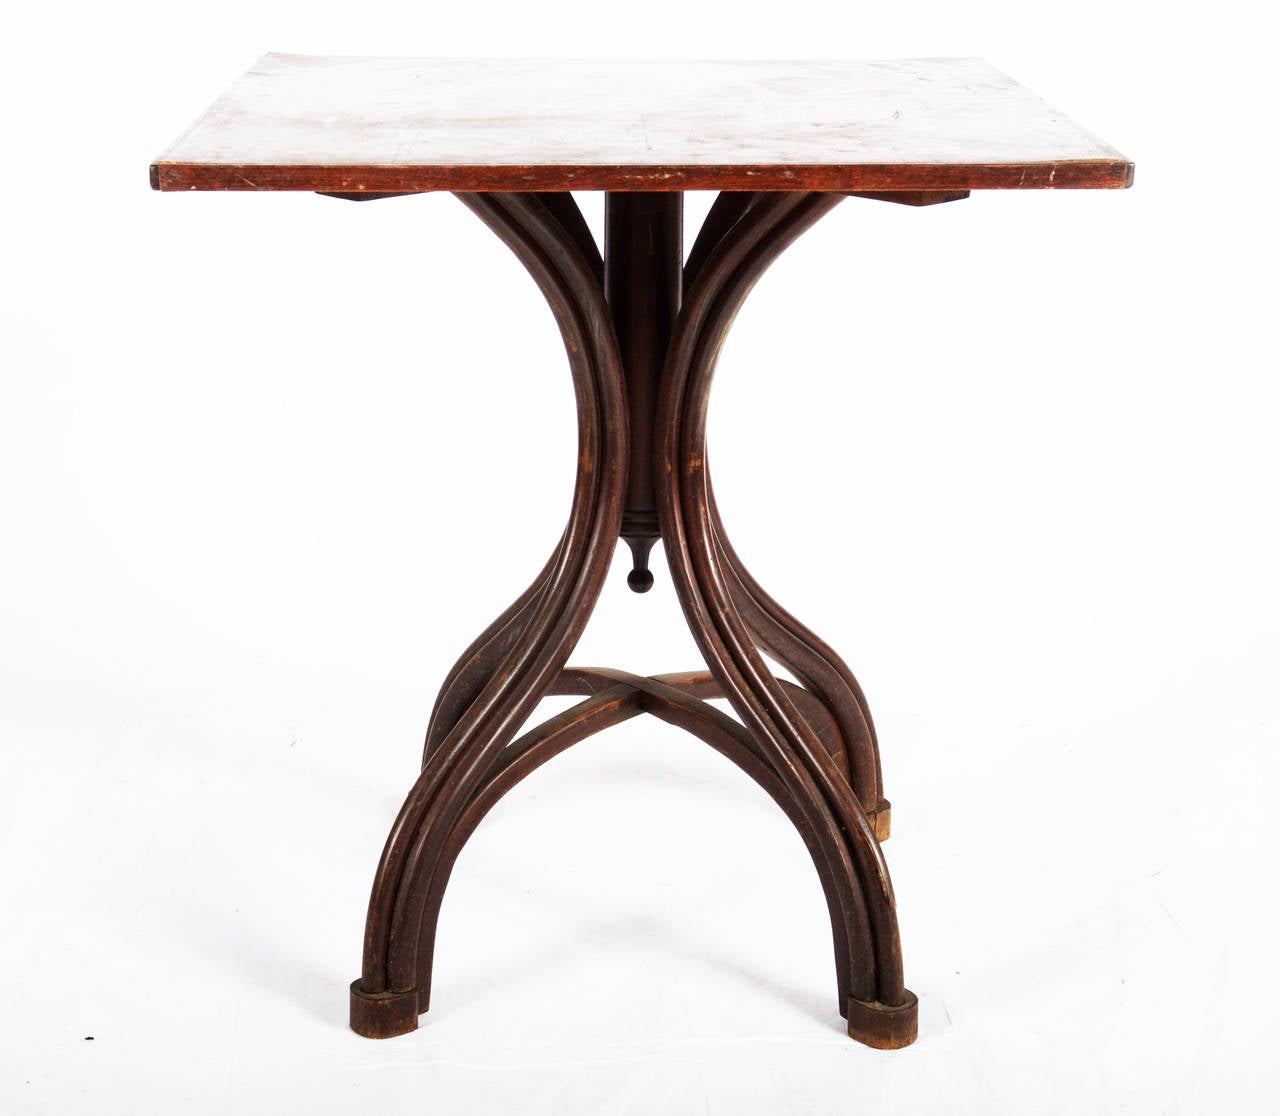 Thonet table for sale at 1stdibs for Table thonet